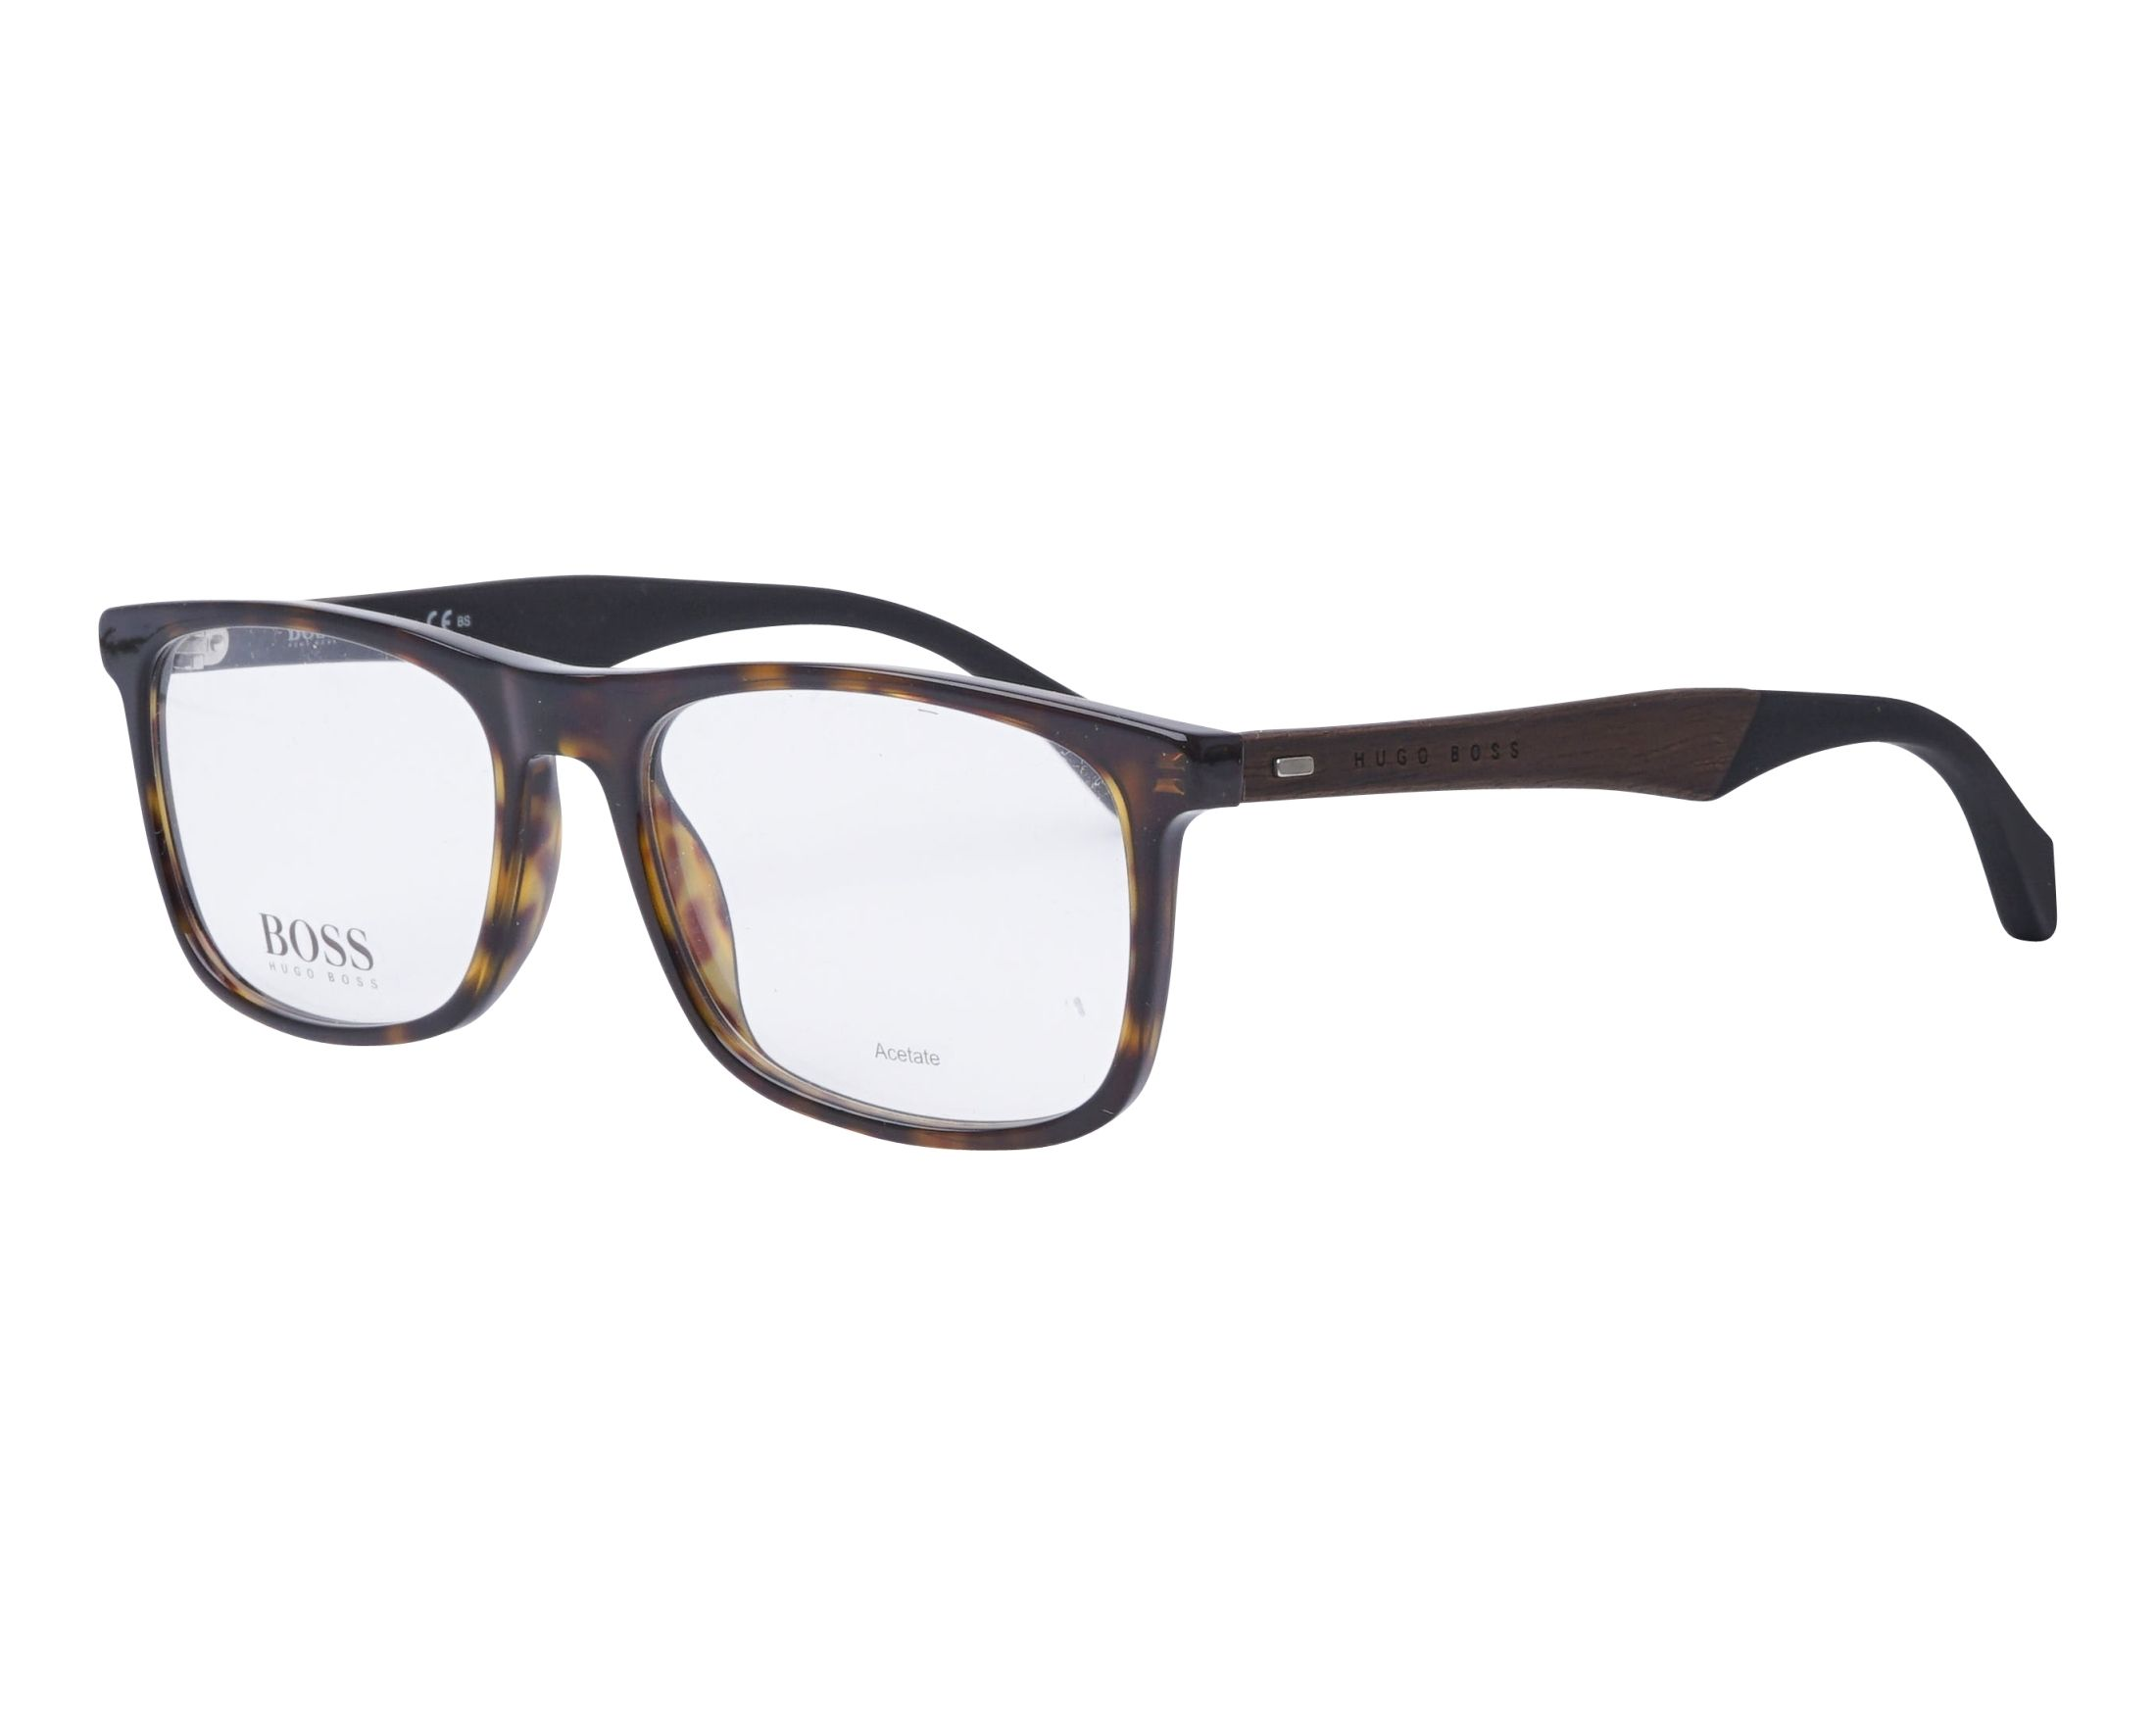 Hugo Boss Eyeglasses BOSS-0779 086 Havana | visio-net.co.uk